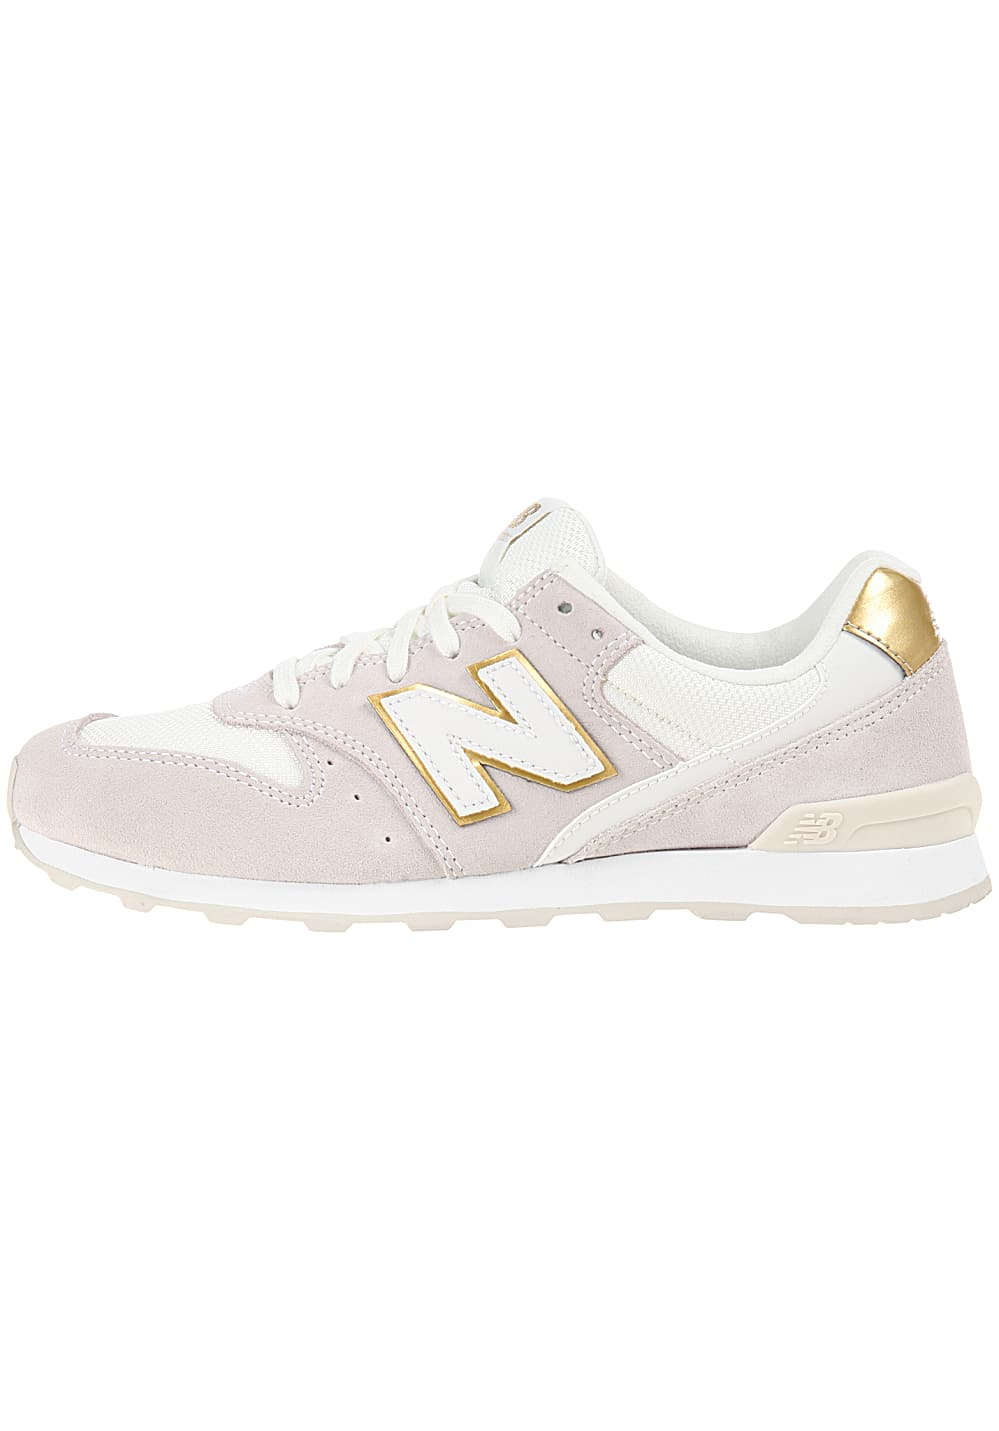 New Balance D Wr996 Planet Sneaker Für Grau Sports Damen QdxBWerCo